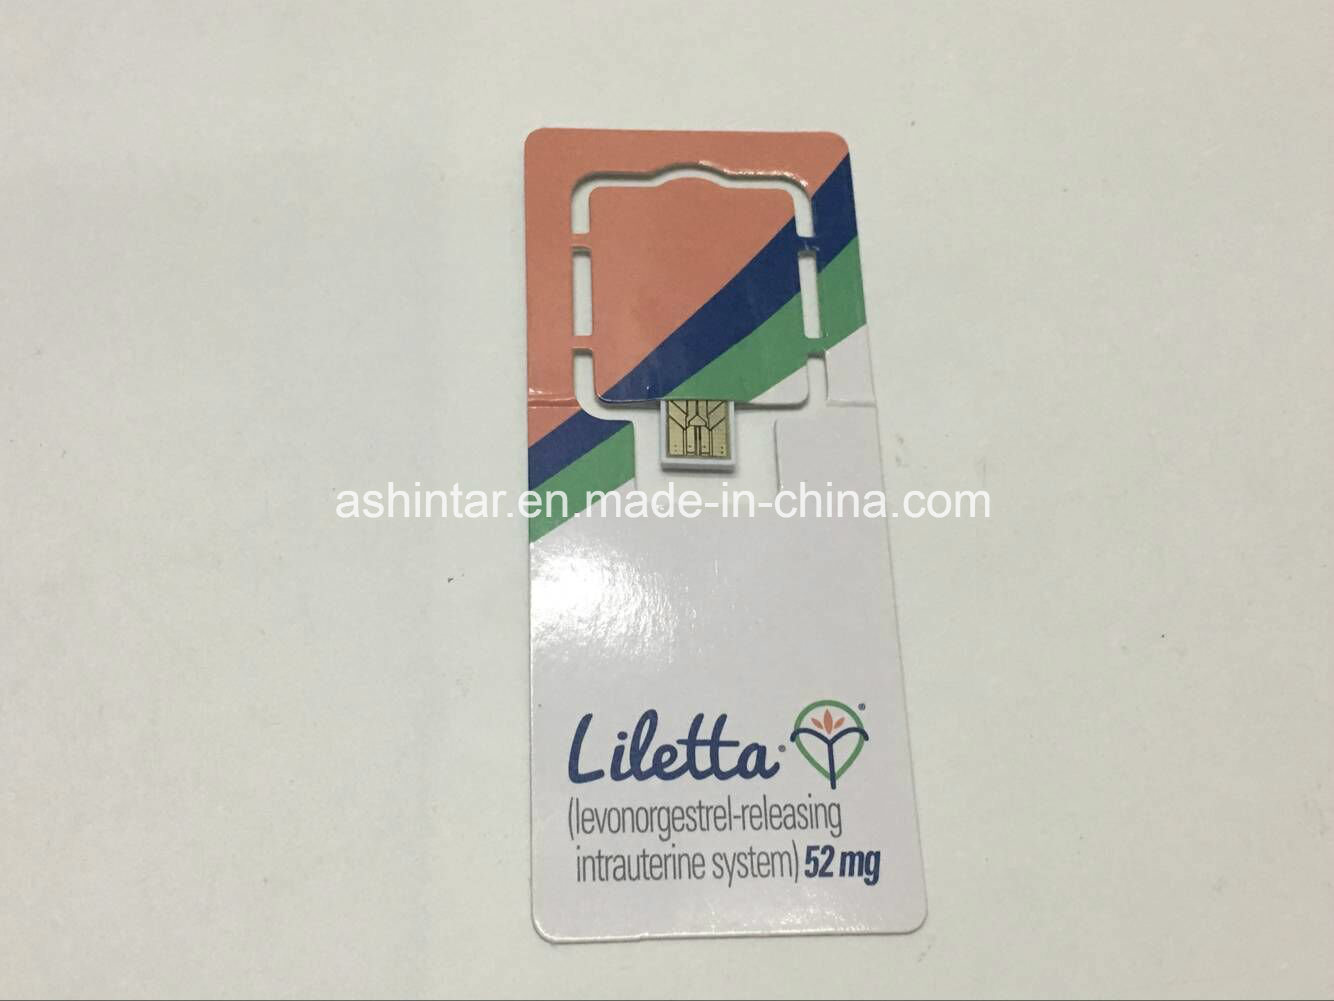 China customize usb stick business card size paper usb webkey with customize usb stick business card size paper usb webkey with automatically link website reheart Gallery